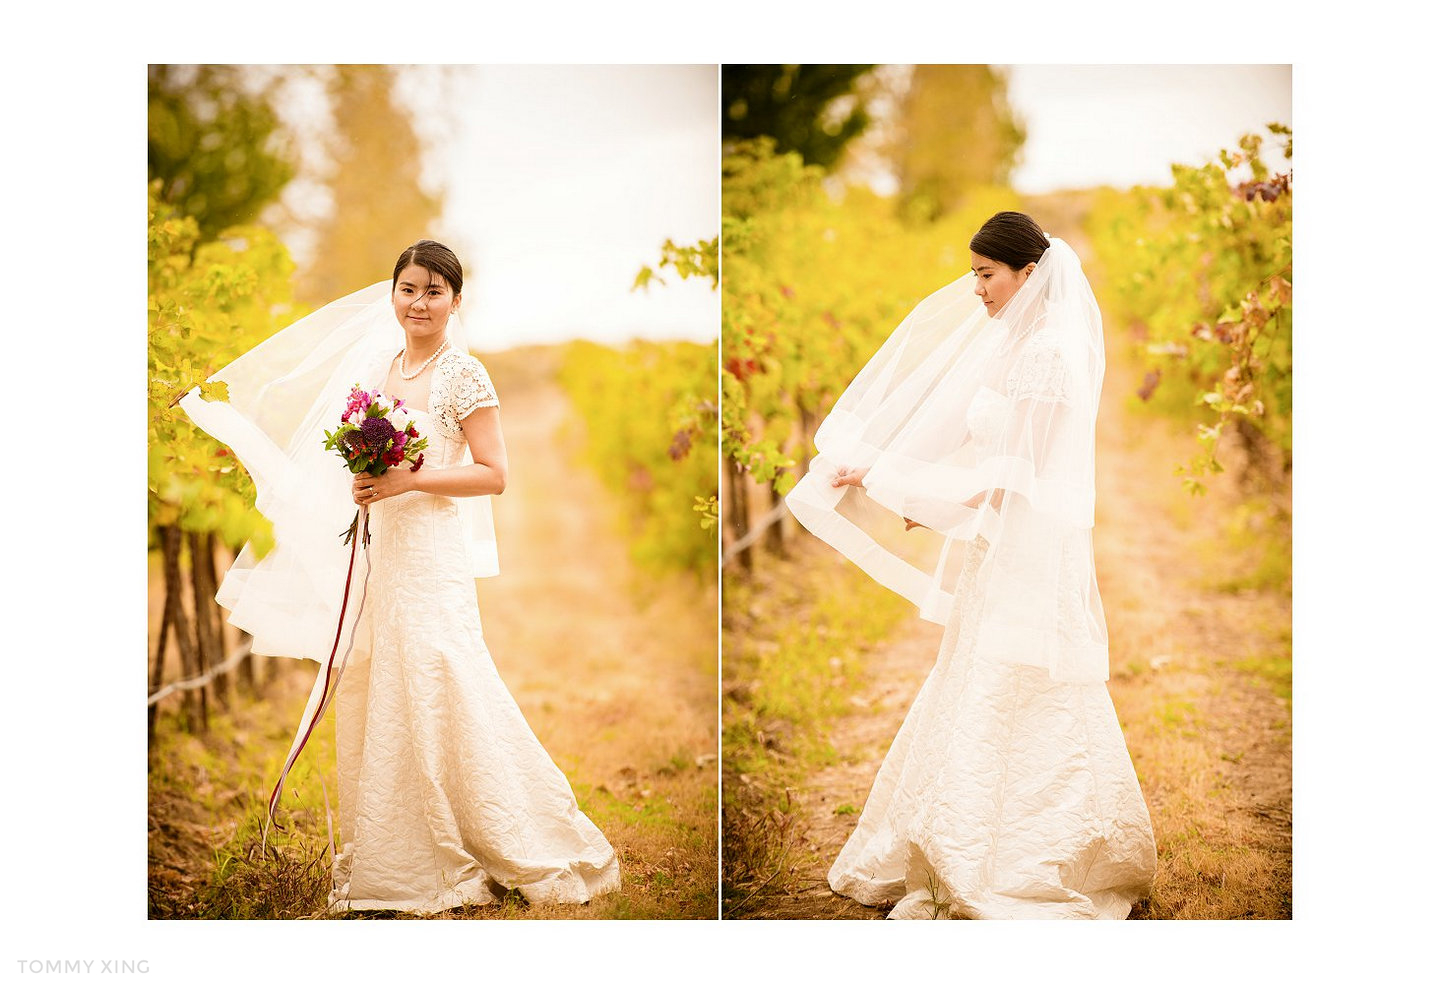 Tommy Xing Photography Seattle CAVE B ESTATE WINERY wedding 西雅图酒庄婚礼09.jpg